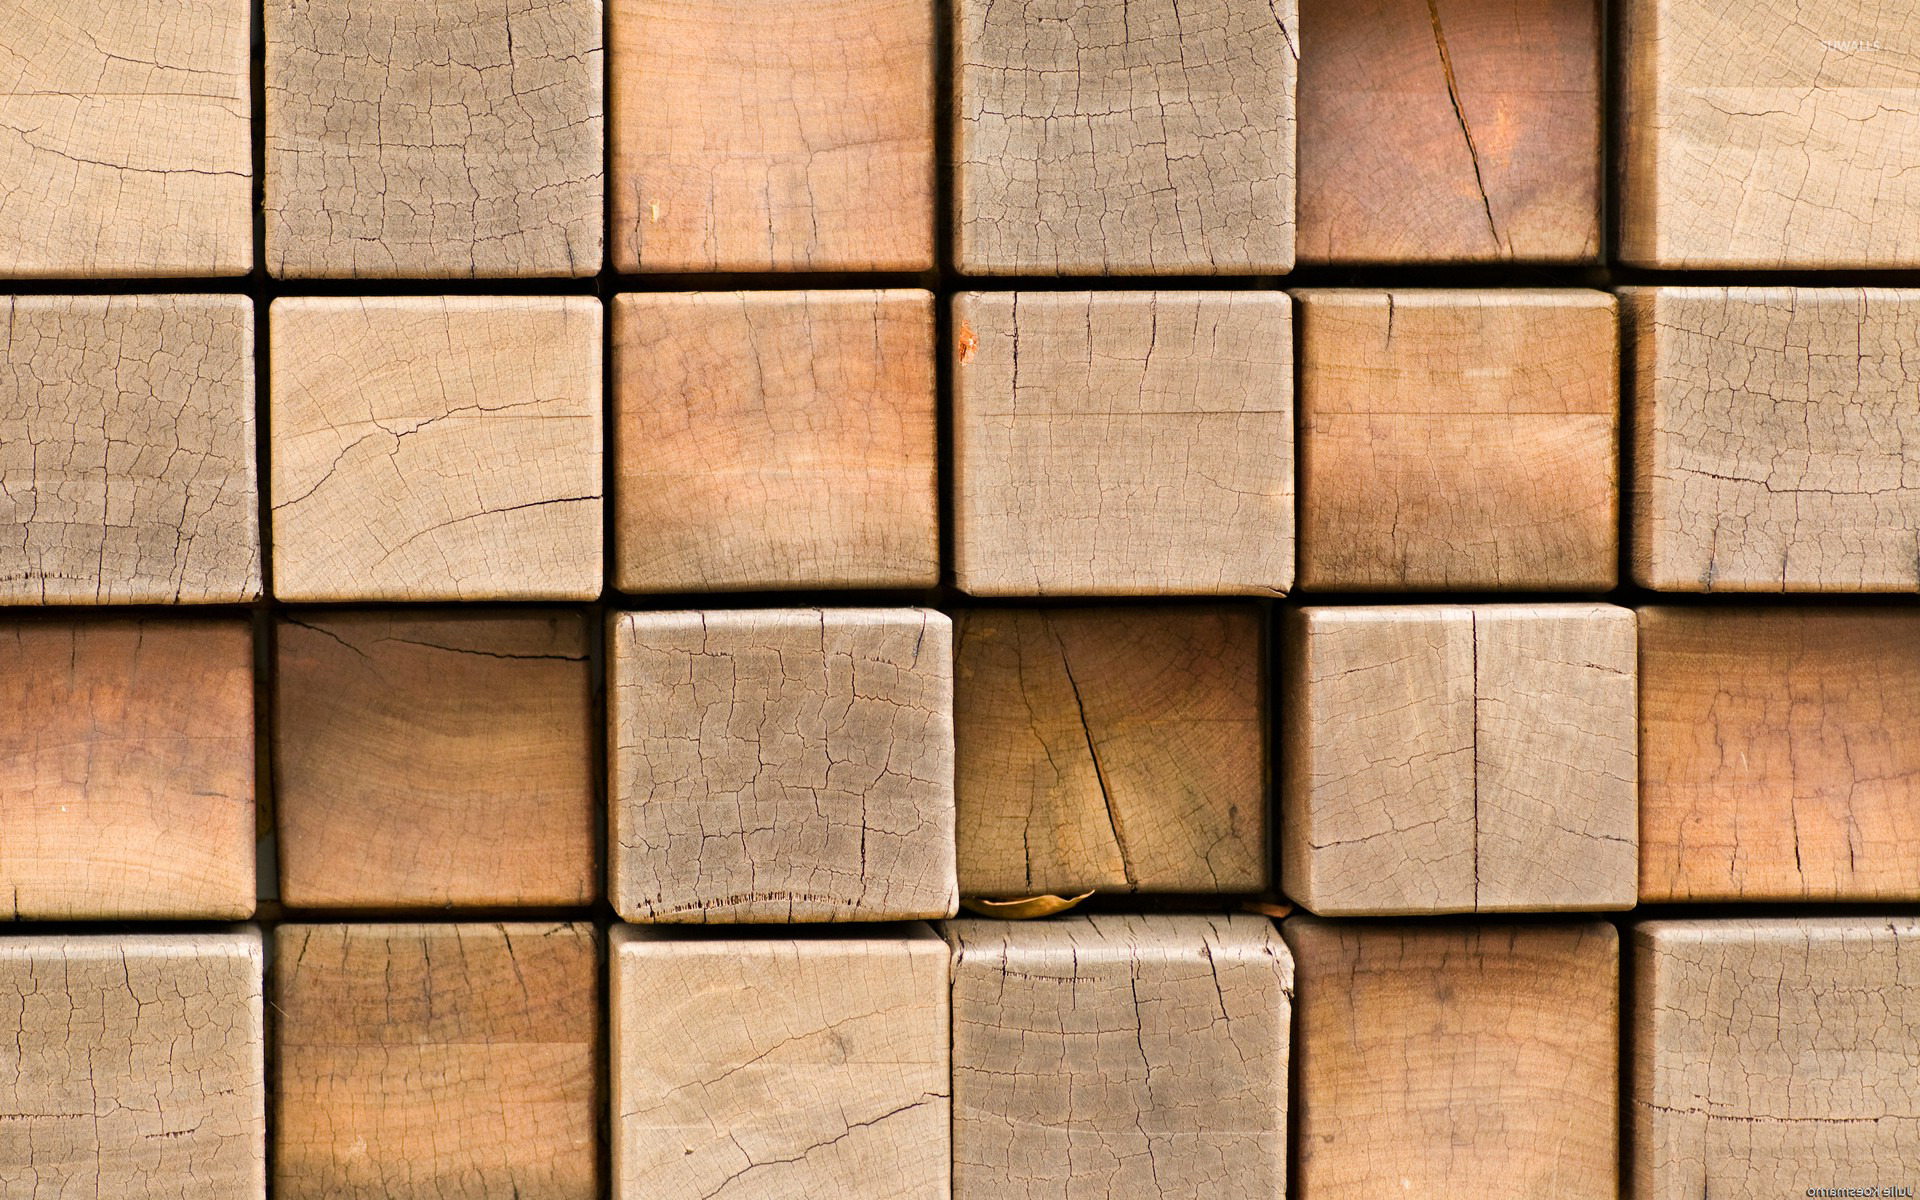 Wooden Blocks Wallpaper Photography Wallpapers 22517